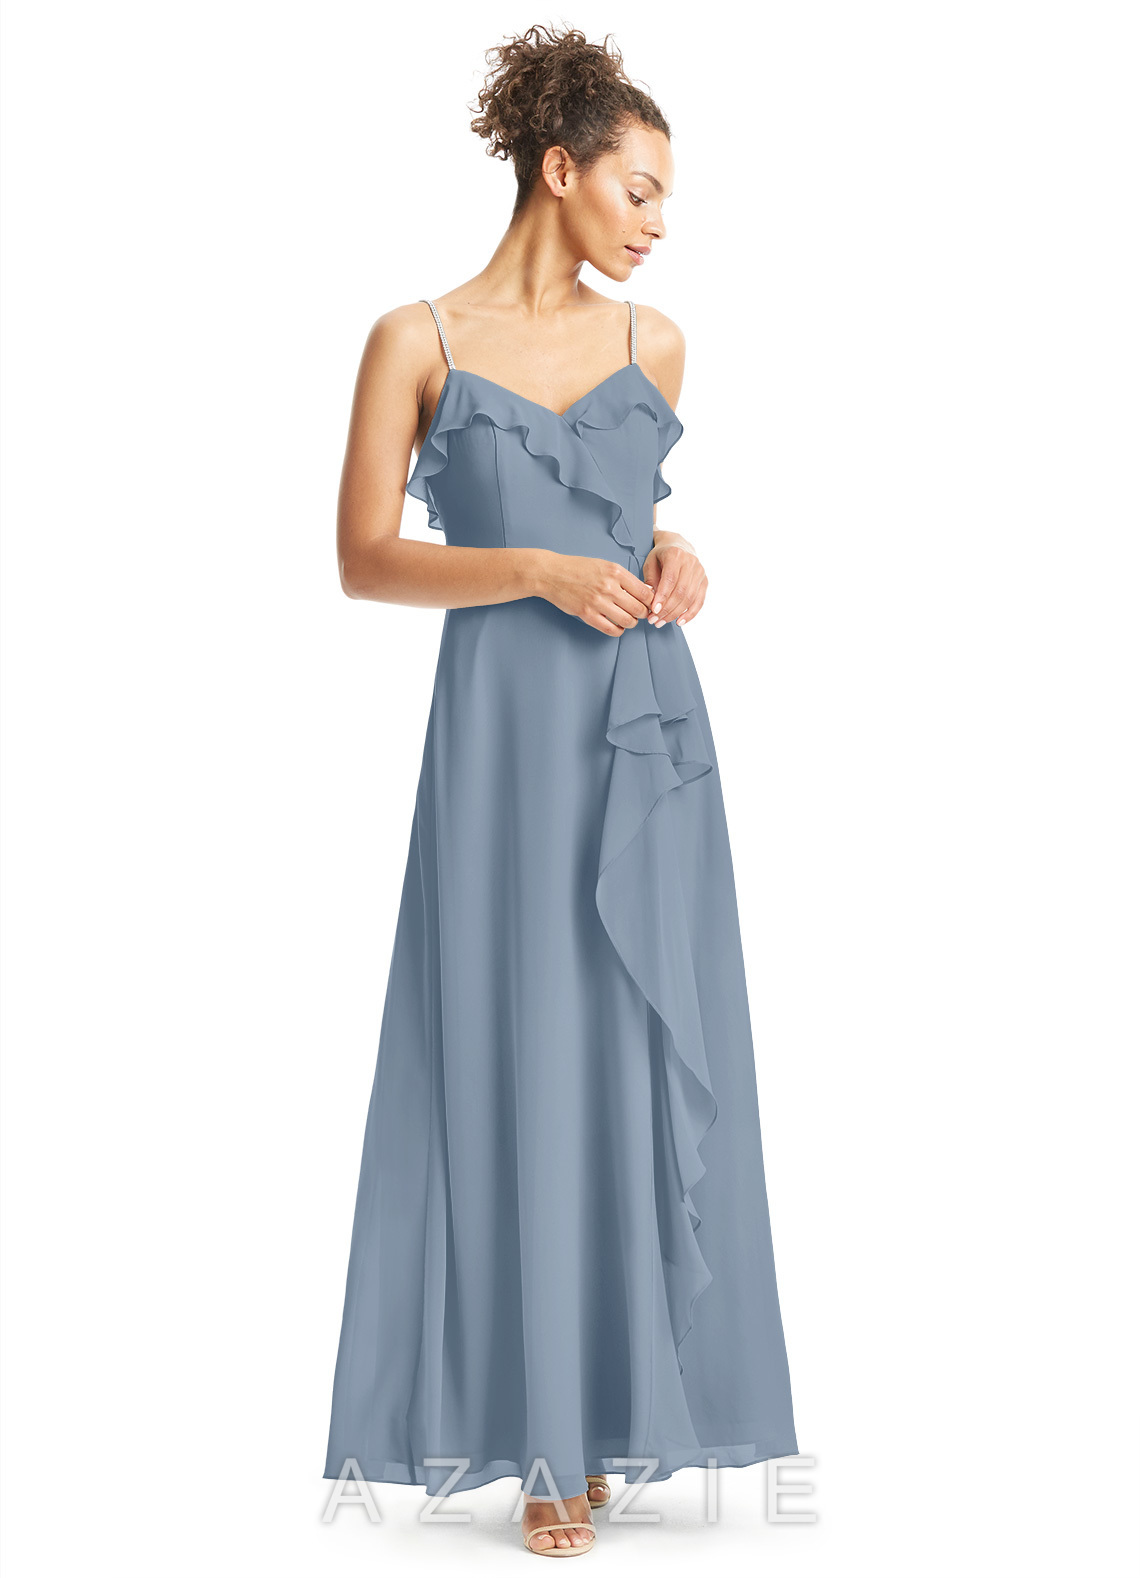 b53ac26a68 Azazie Kendra Bridesmaid Dresses